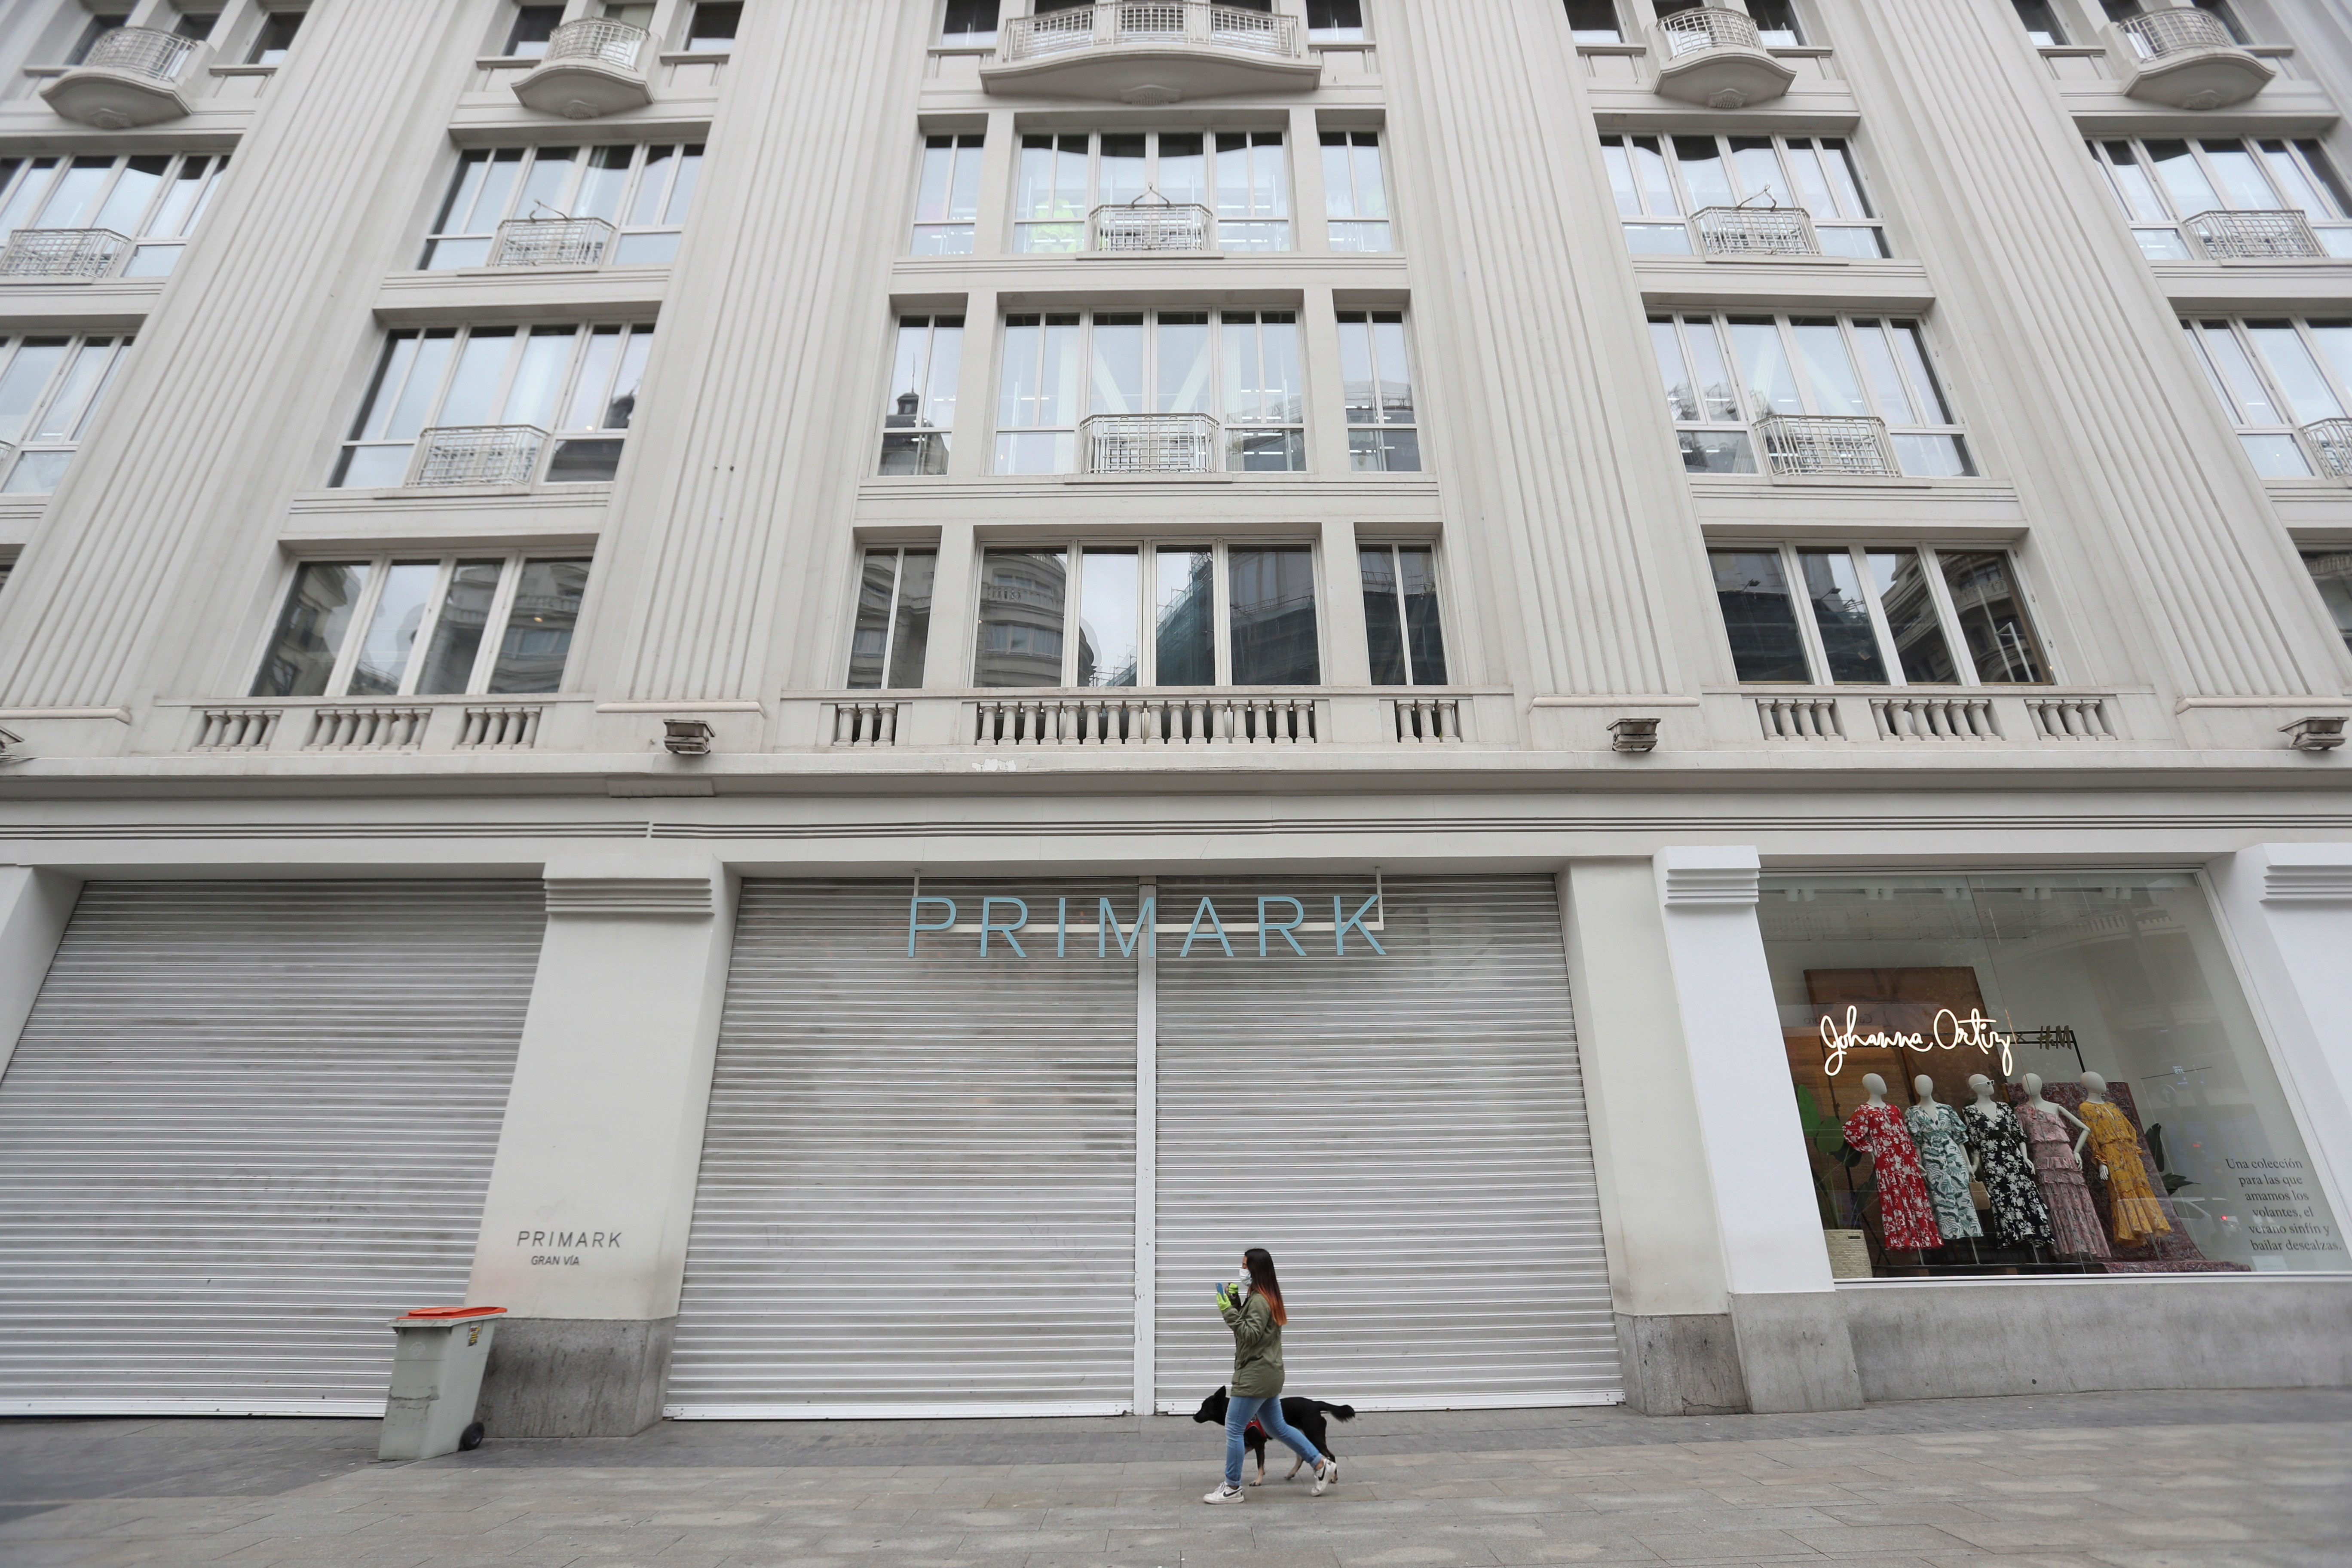 A woman walks her dog past a closed Primark store in downtown Madrid, Spain, 20 March 2020. The pandemic caused an unexpected economic crisis. Spain faces the sixth day of national lockdown on 20 March in an effort to slow down the spread of the pandemic COVID-19 disease. According to the latest figures provided by the health ministry, there are at least 18,074 confirmed coronavirus infections throughout Spain, while 832 people have died so far in the Mediterranean country. Coronavirus crisis, Madrid, Spain - 20 Mar 2020